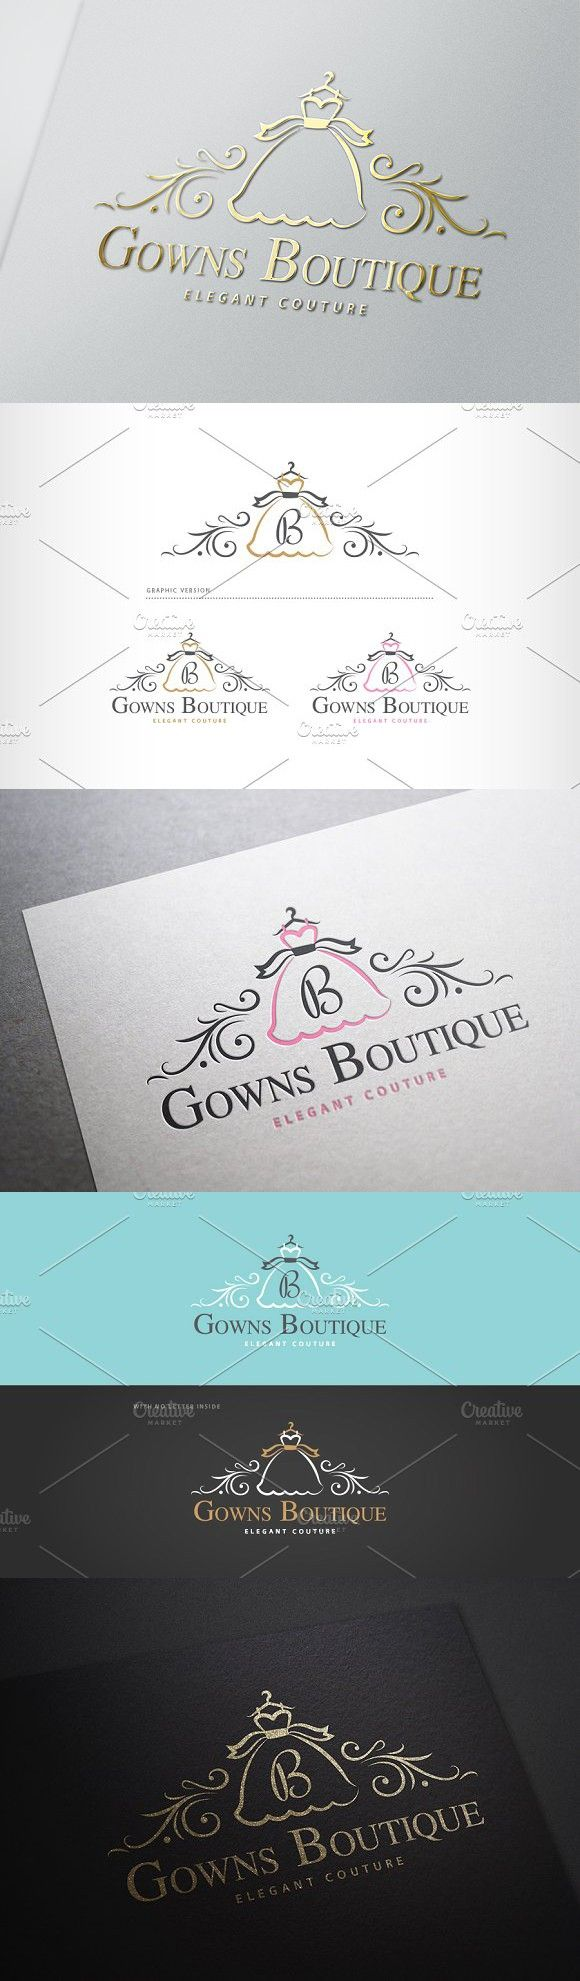 Gowns Boutique Logo. Script Fonts